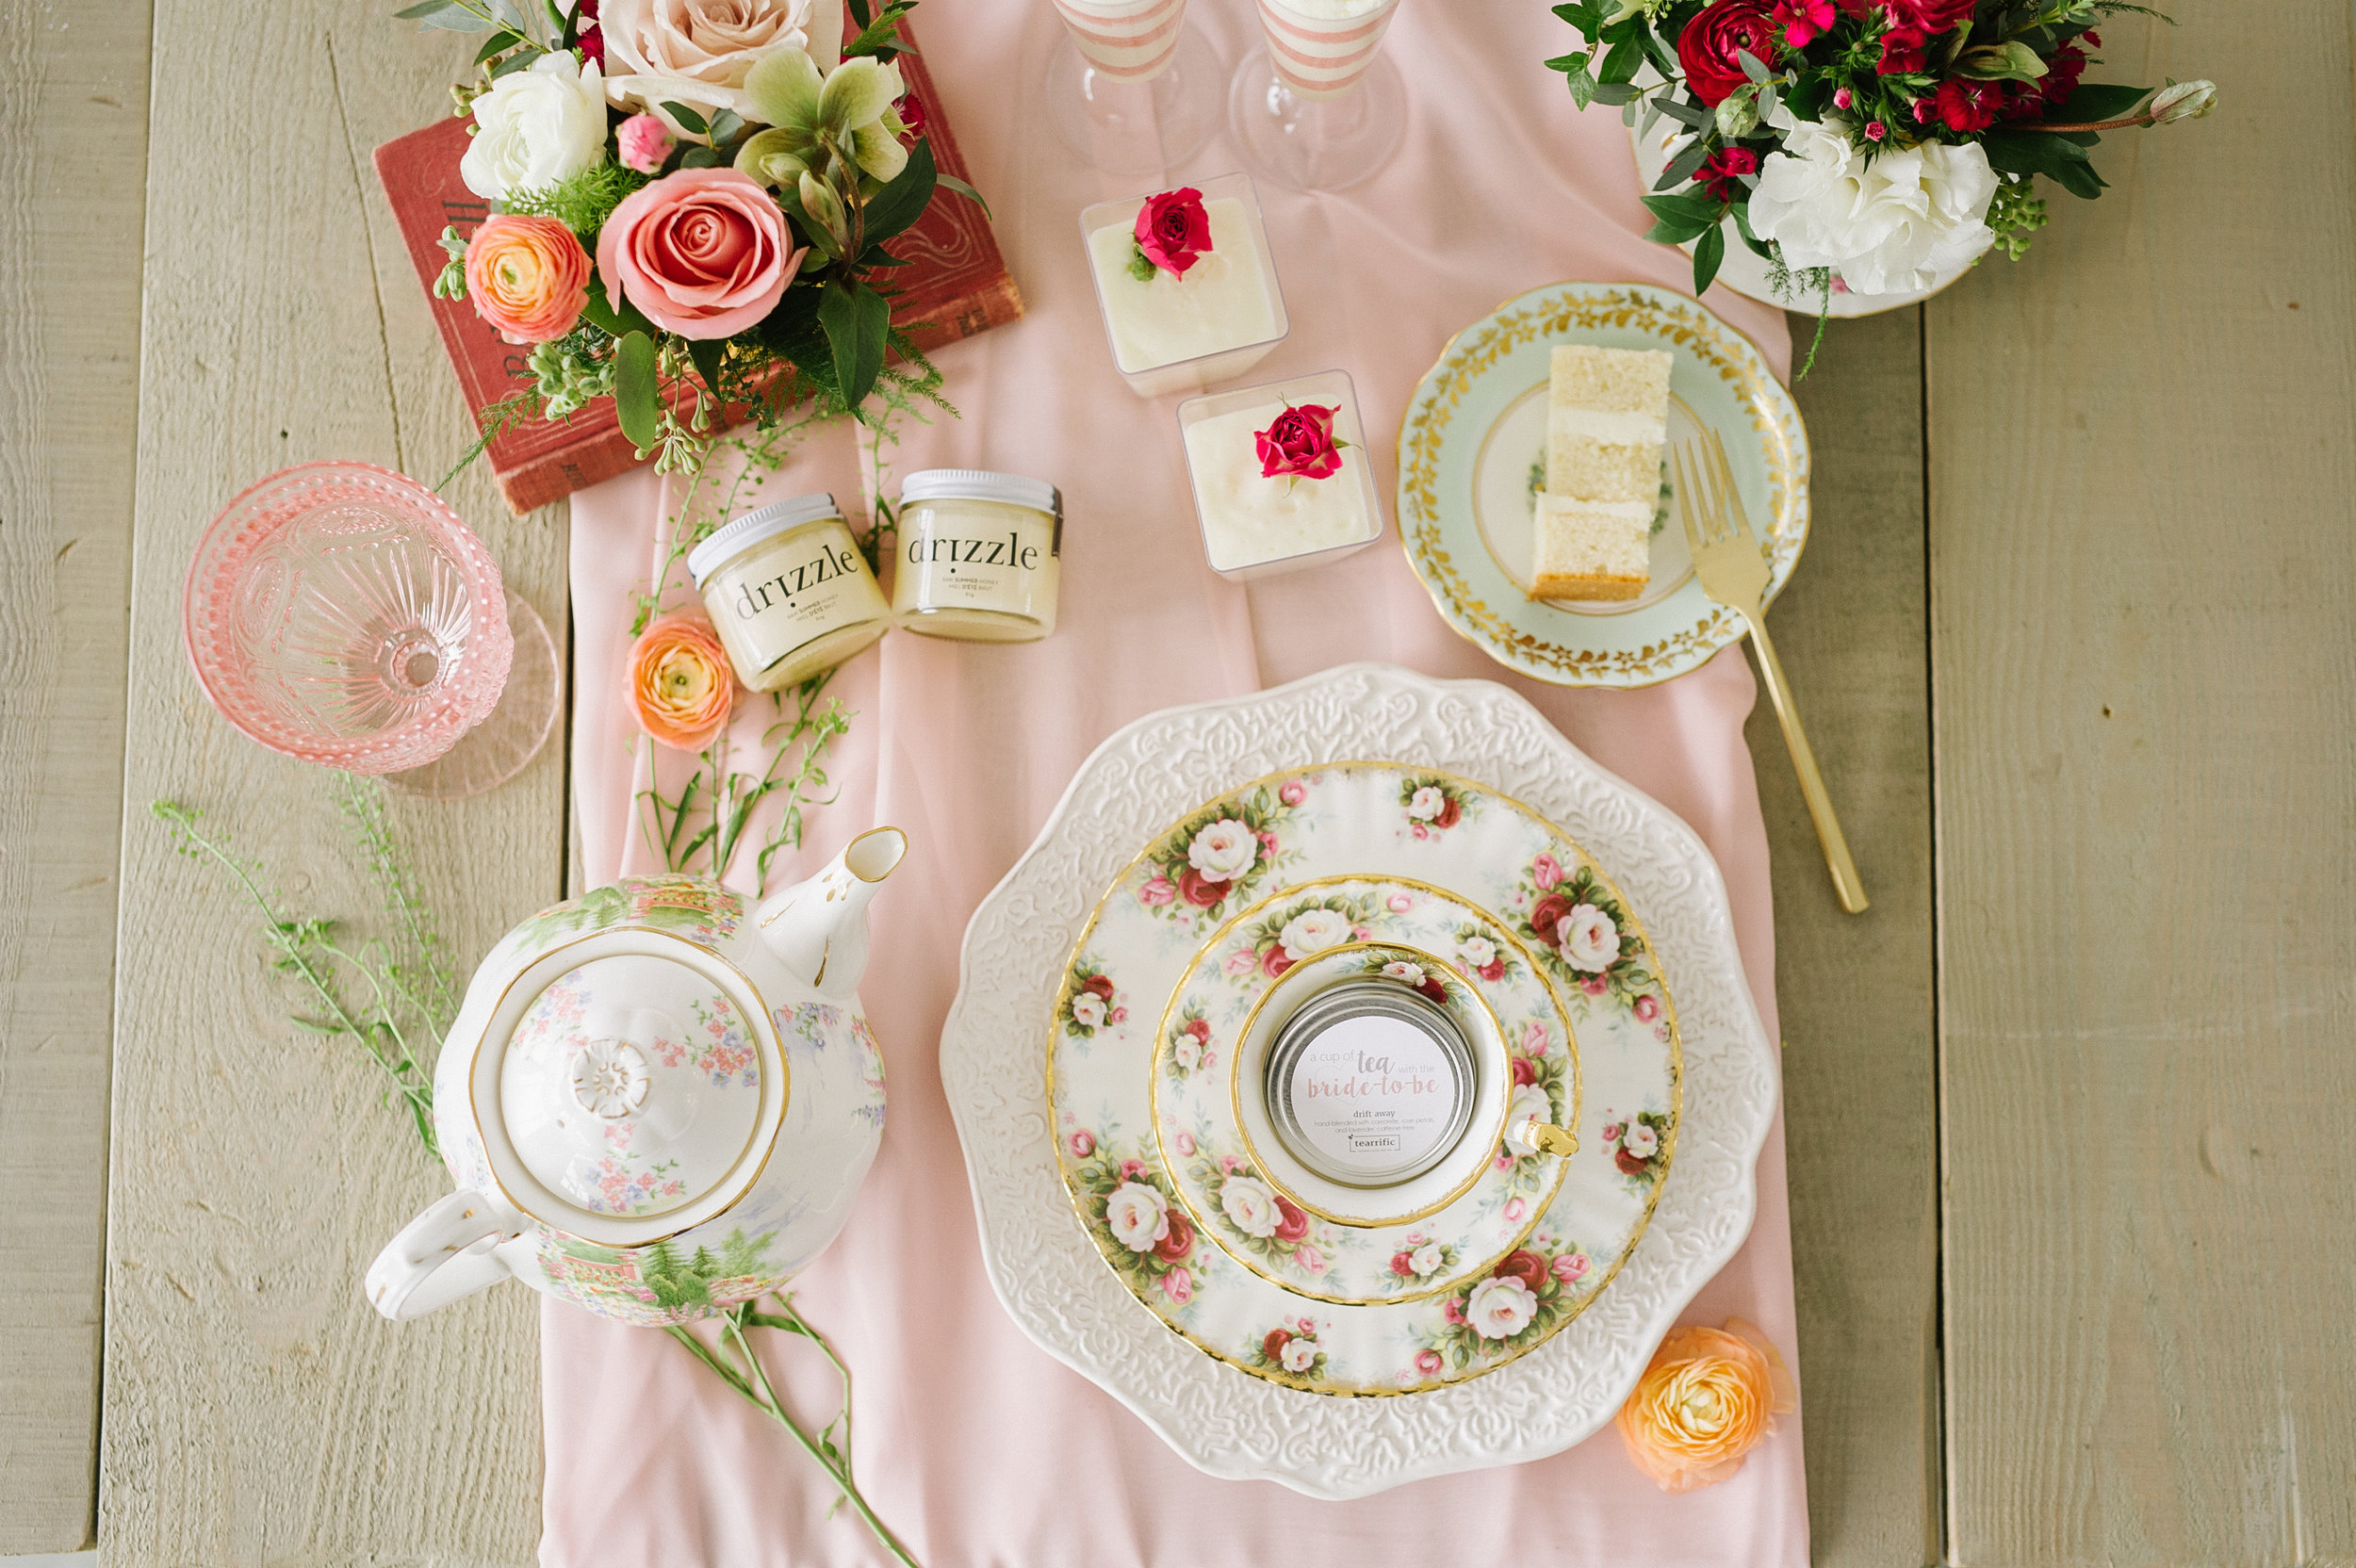 Calgary_Wedding_Photography_Spruce_Meadows_Bridal_Tea_2018_HR169.jpg